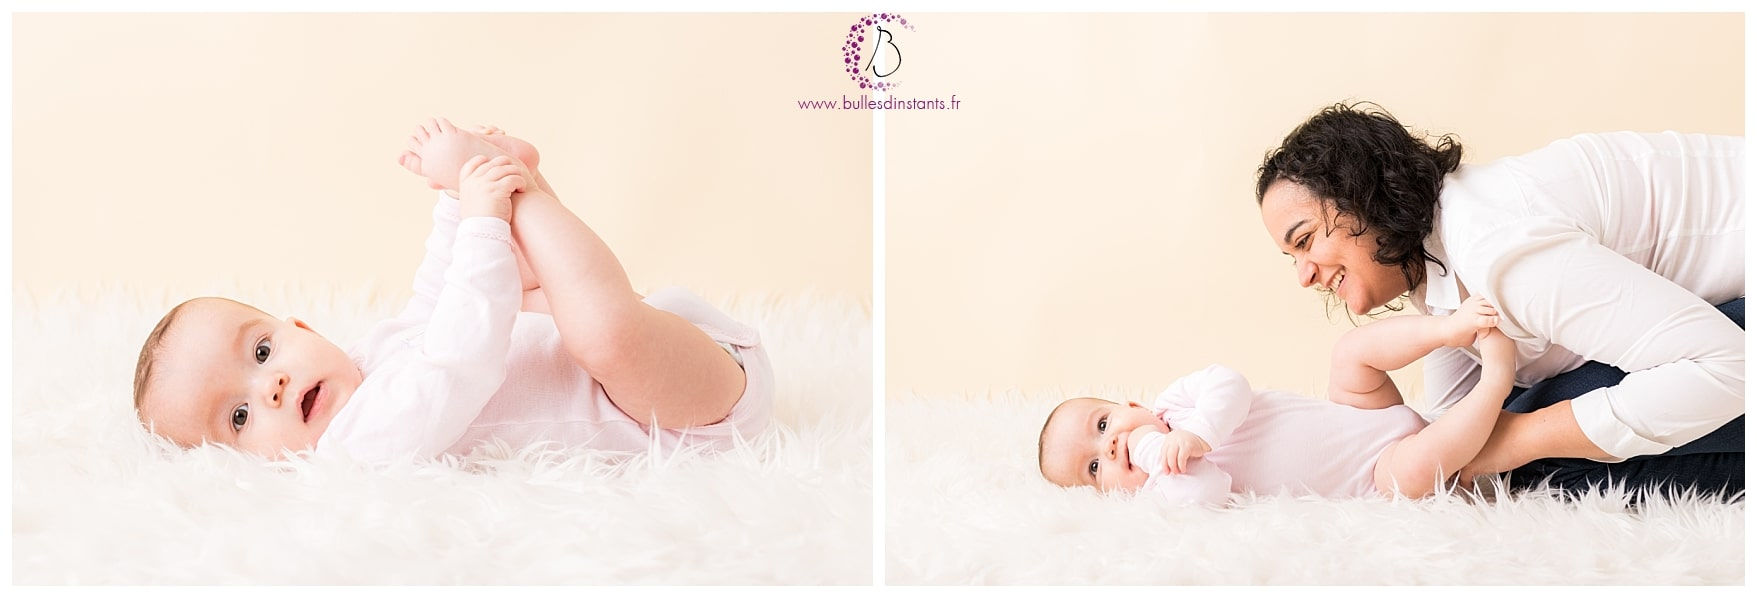 seance-photo-bebe-studio-yvelines